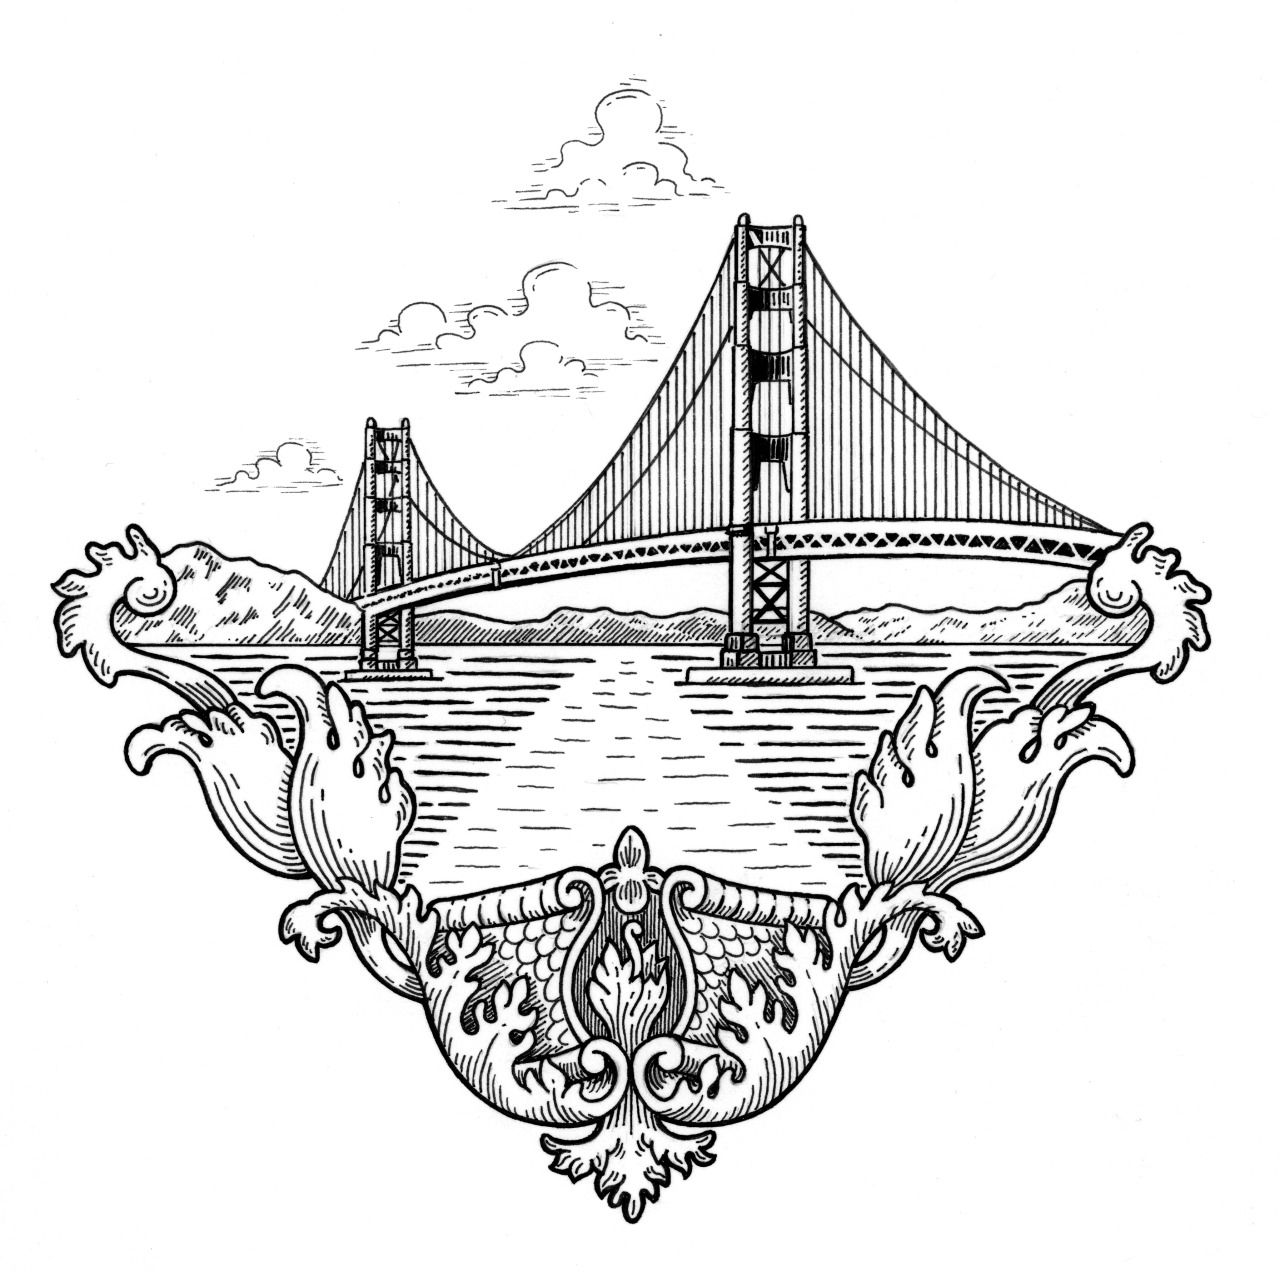 Matt Ritchie's Icons of San Francisco. This past